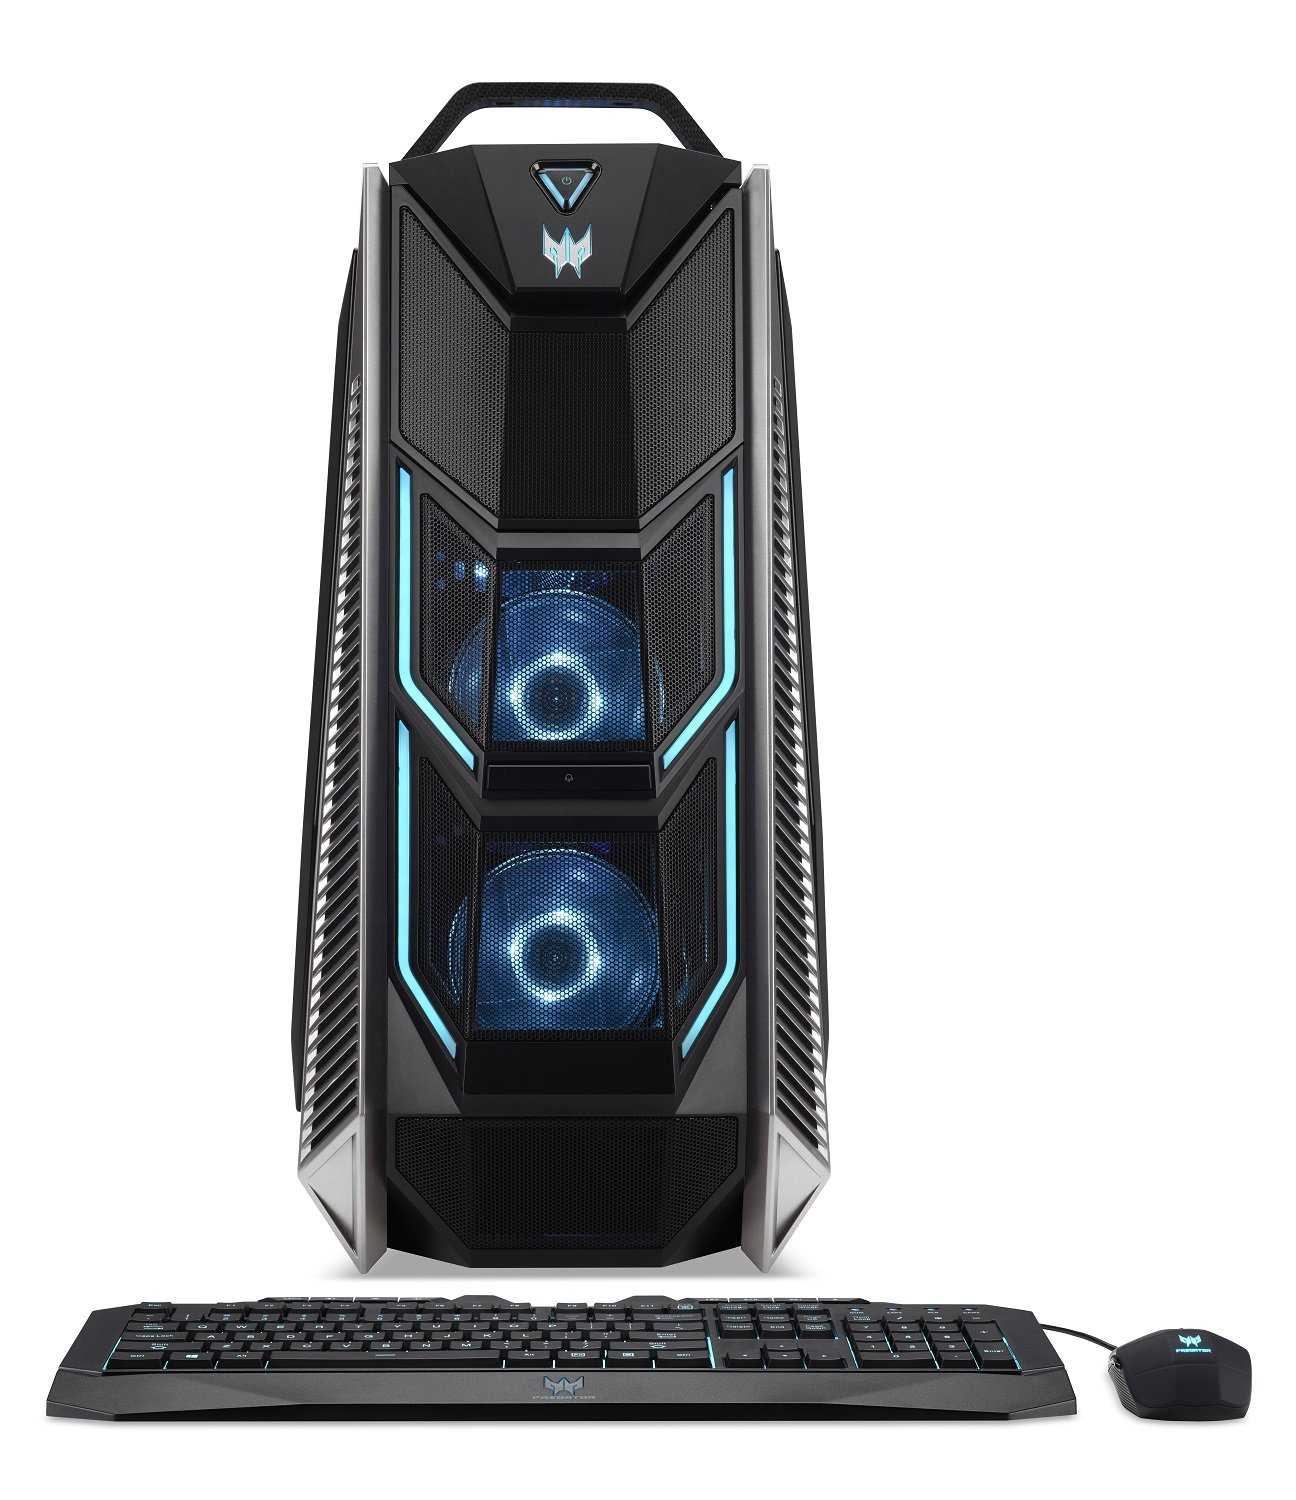 Best Gaming PC with gtx 1080